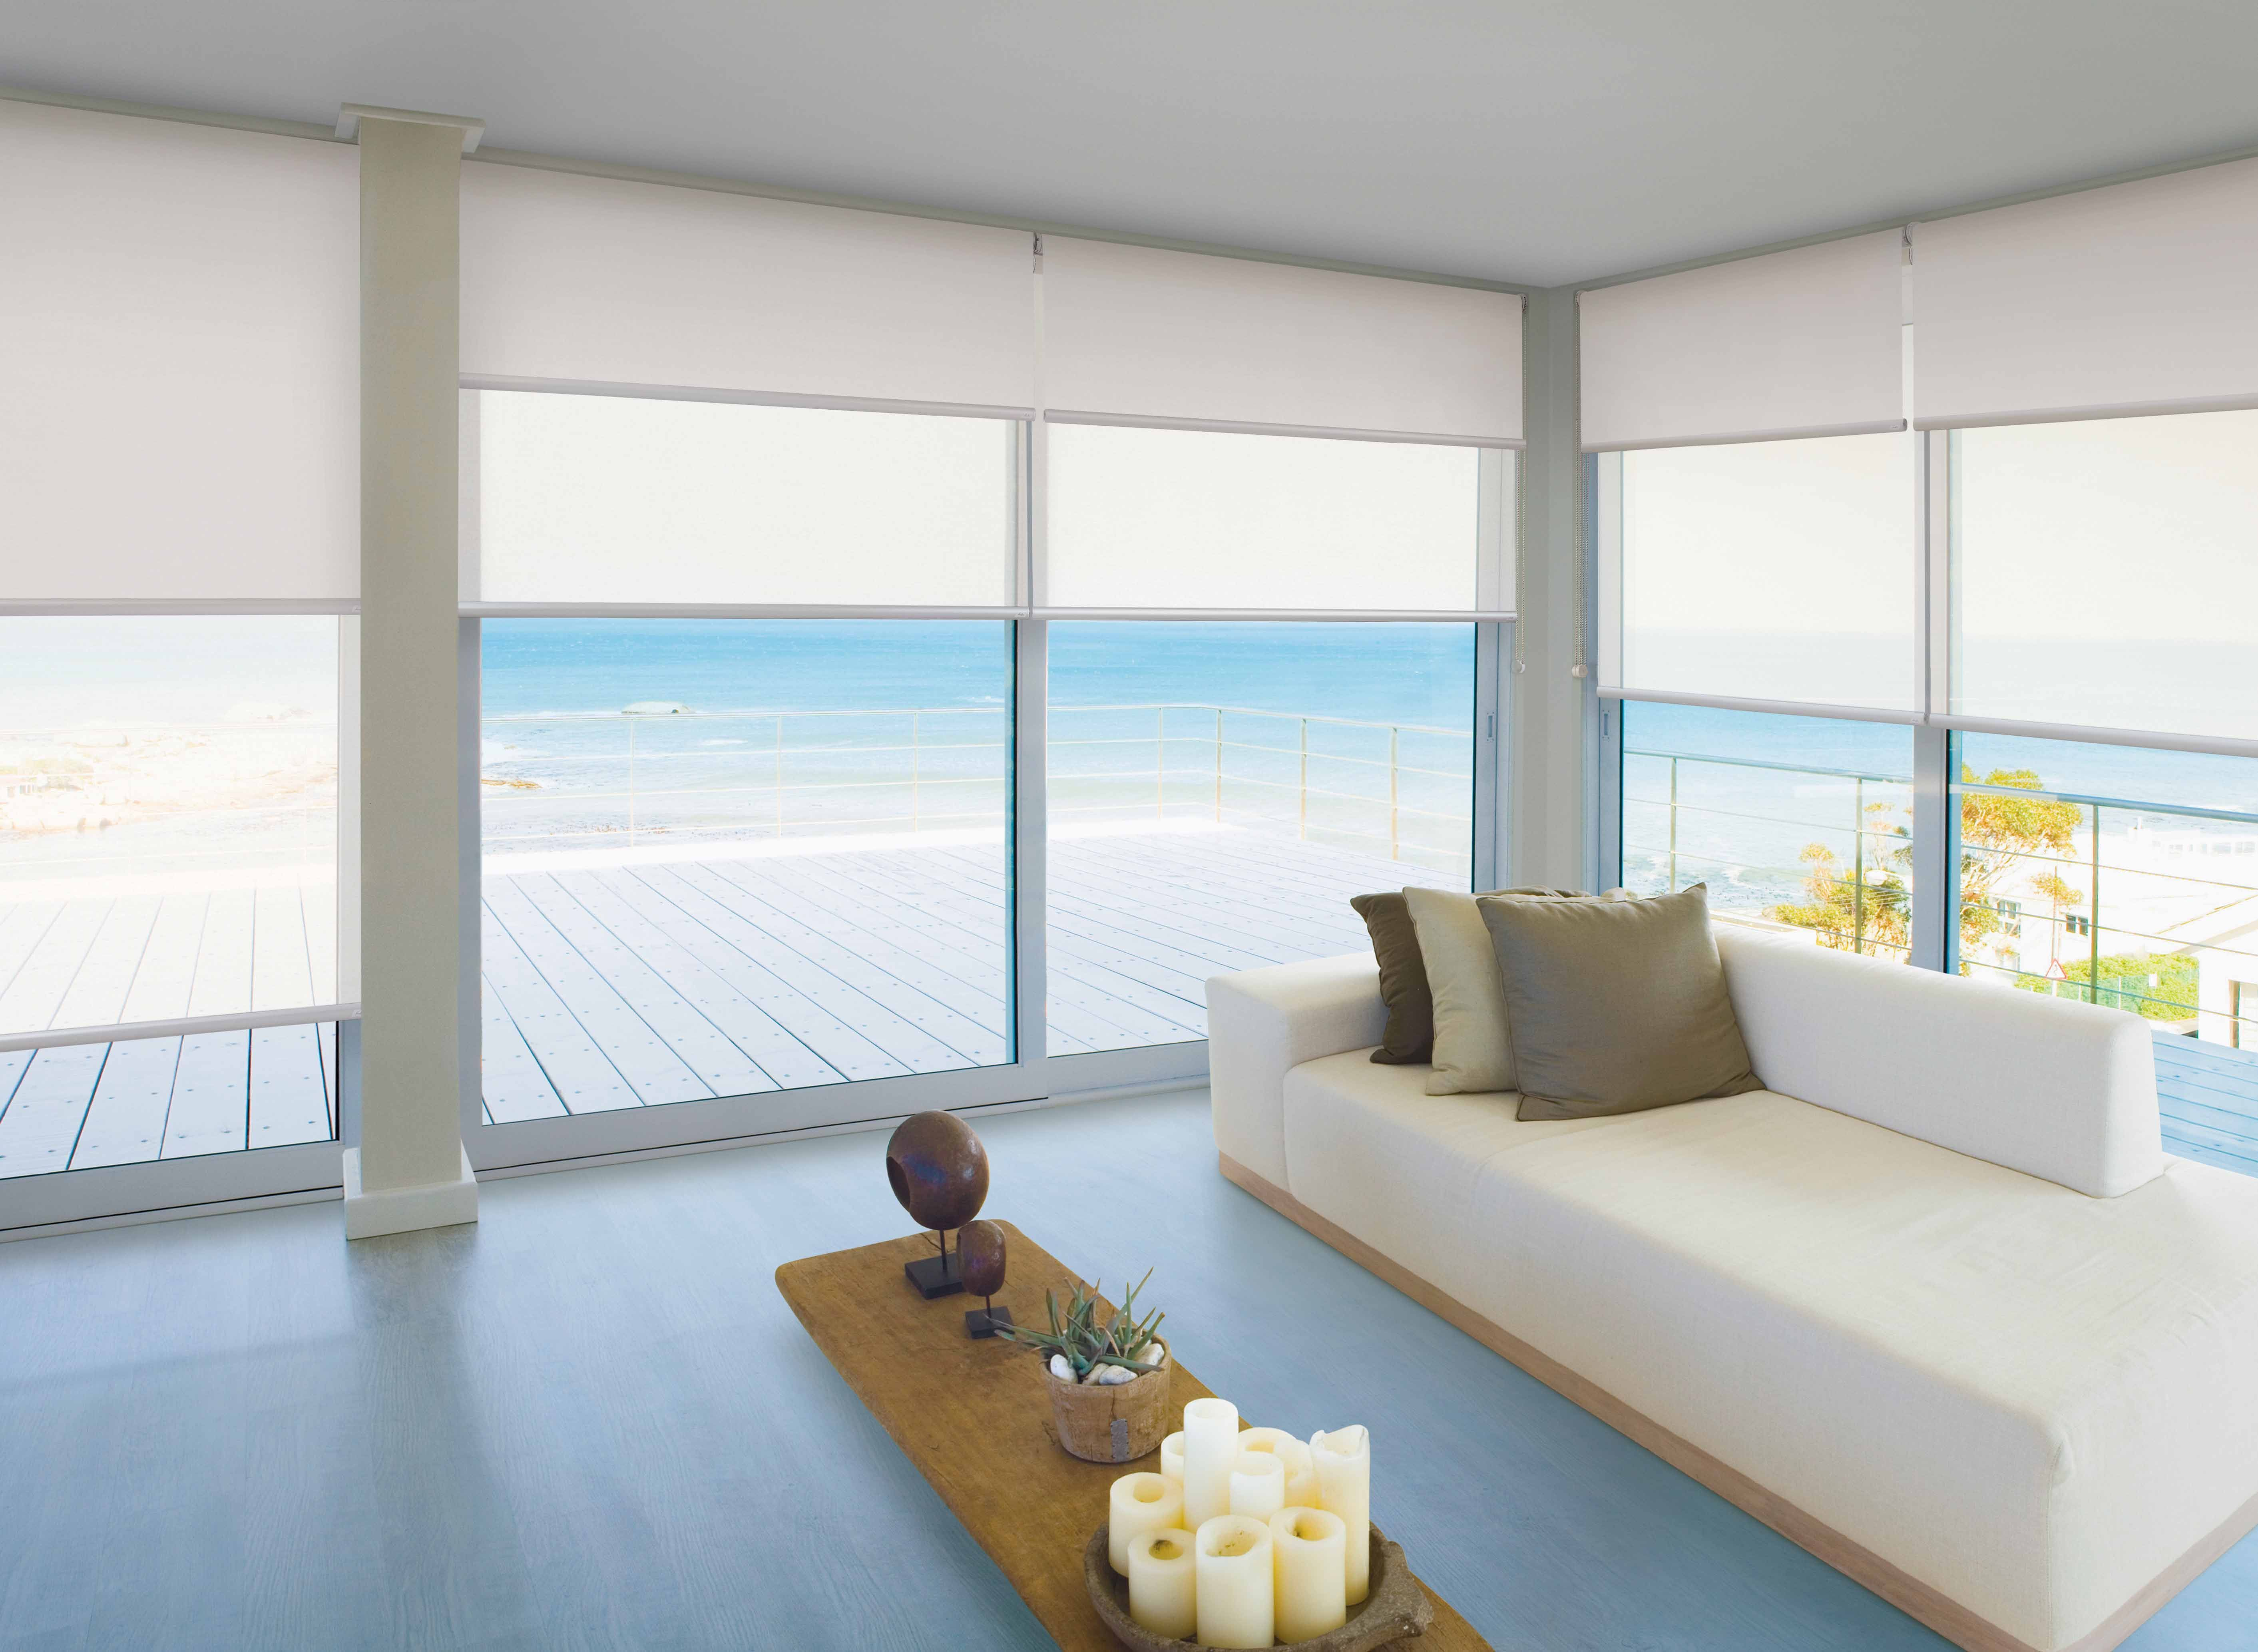 roller blinds luxaflex roller blinds with patented edge technology offering unrivalled strength combined with a fensterrollos haus jalousien diy jalousien